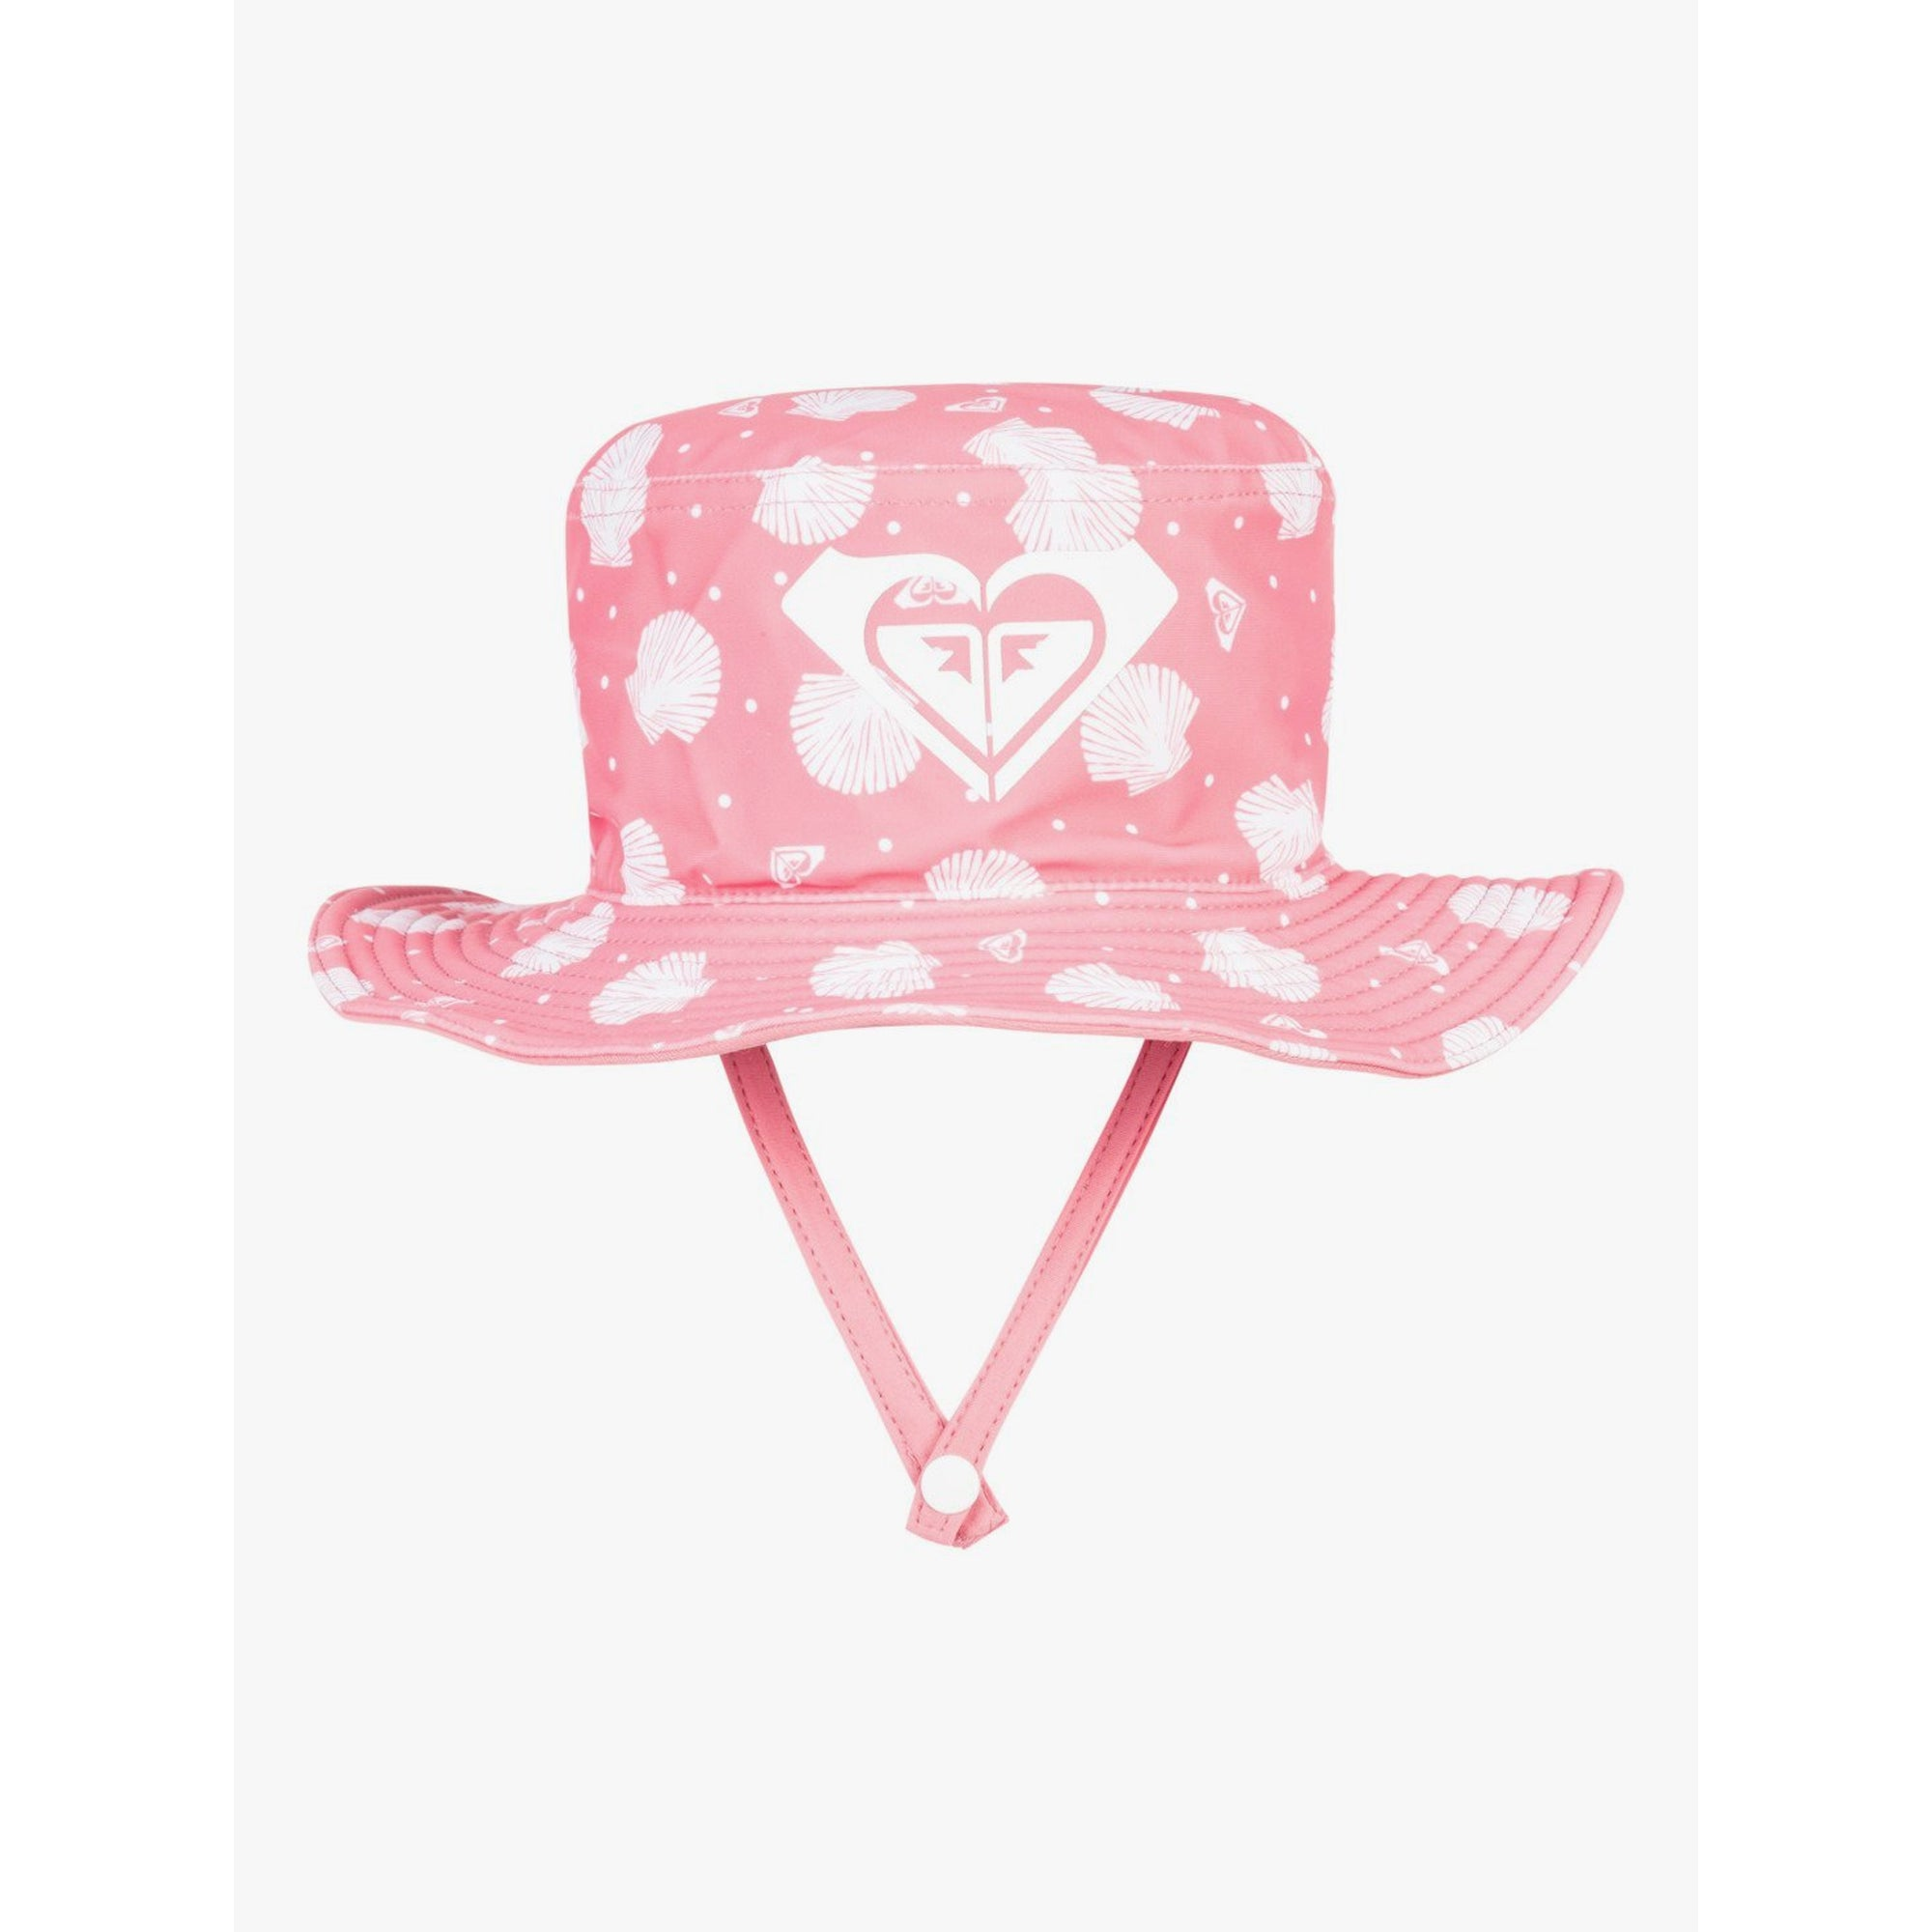 Roxy New Bobby Youth Girl's Reversible Bucket Hat